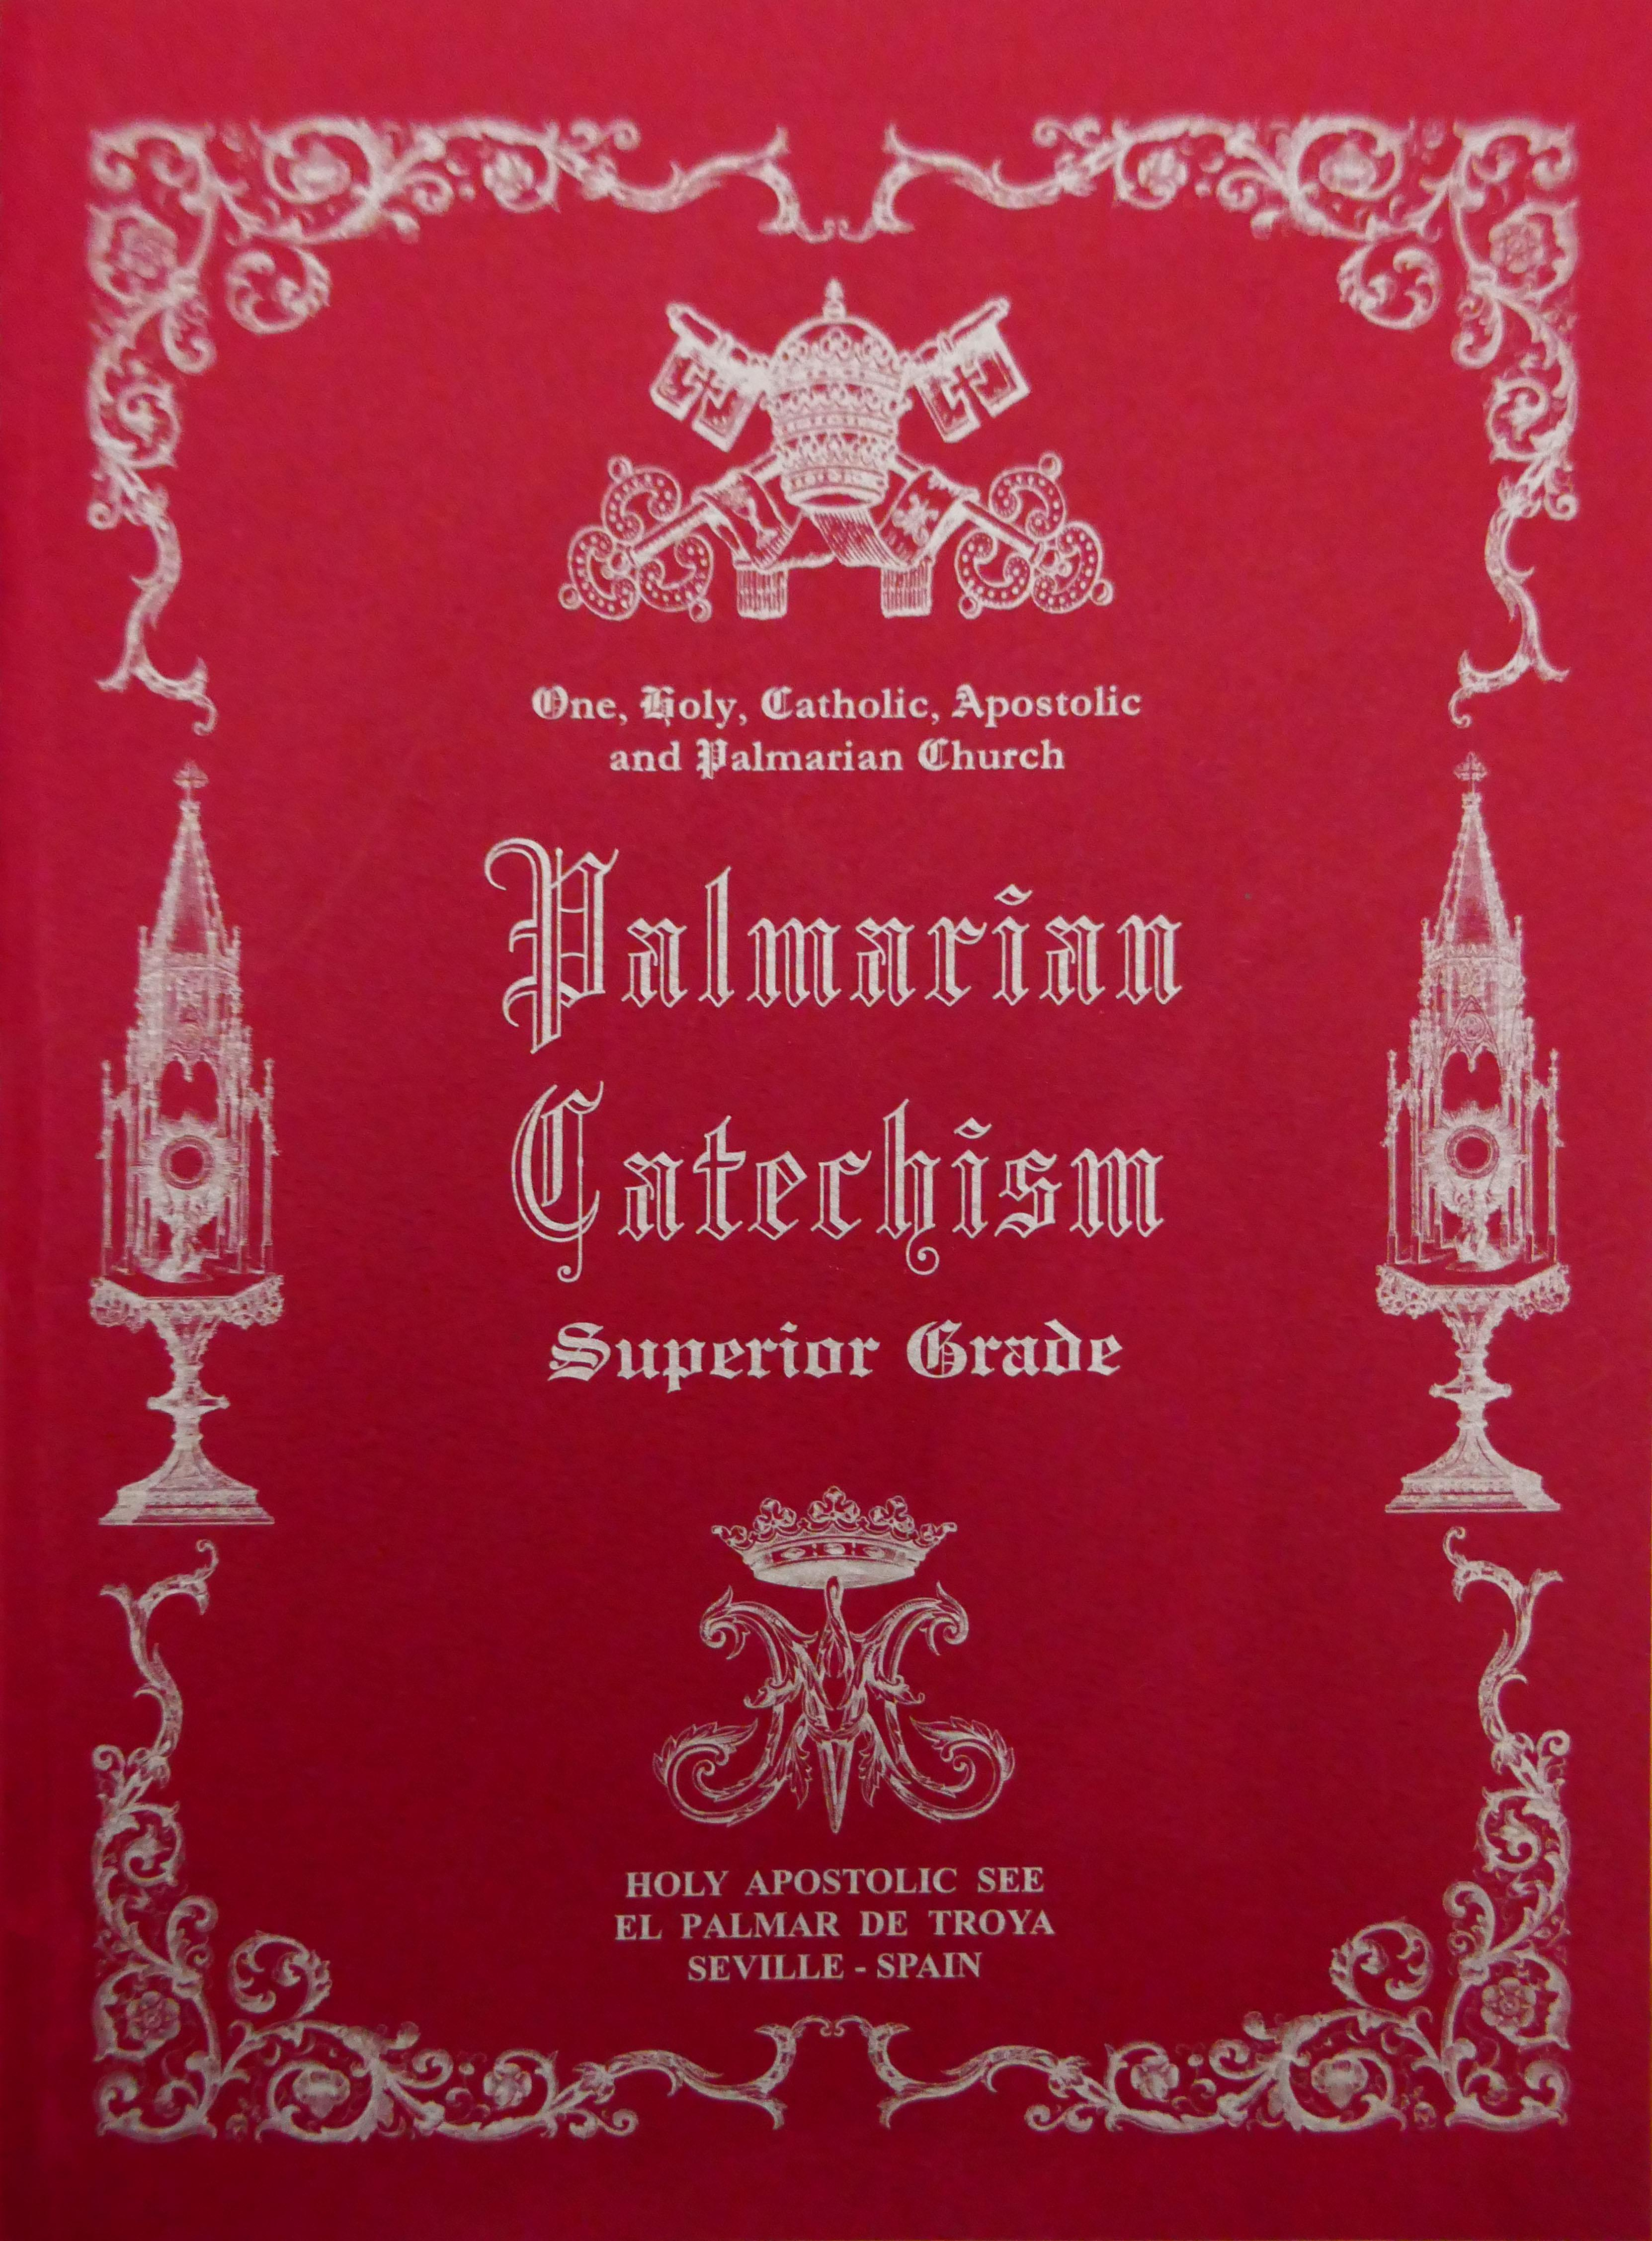 """<a href=""""https://www.palmarianchurch.org/wp-content/uploads/2019/03/Extracts-from-the-Palmarian-Catechism.pdf"""" title=""""Extracts from the Palmarian Catechism"""">Extracts from the Palmarian Catechism  <br> <br> See more</a>"""